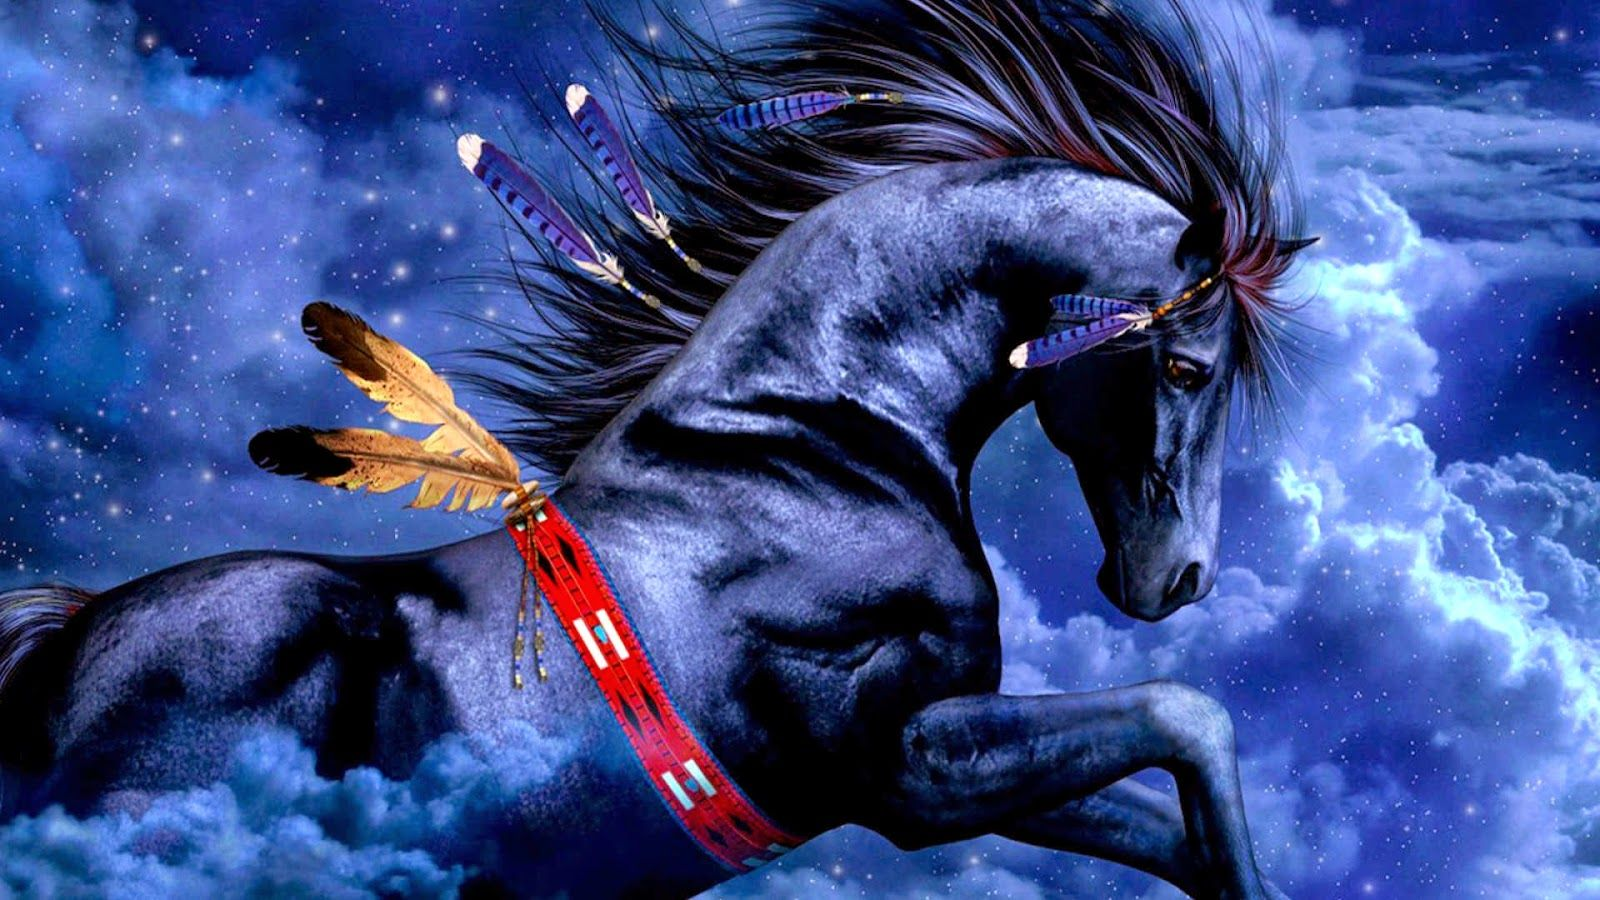 Blue Horse 3d Wallpapers Hd O Native American Horses Horse Wallpaper Indian Horses